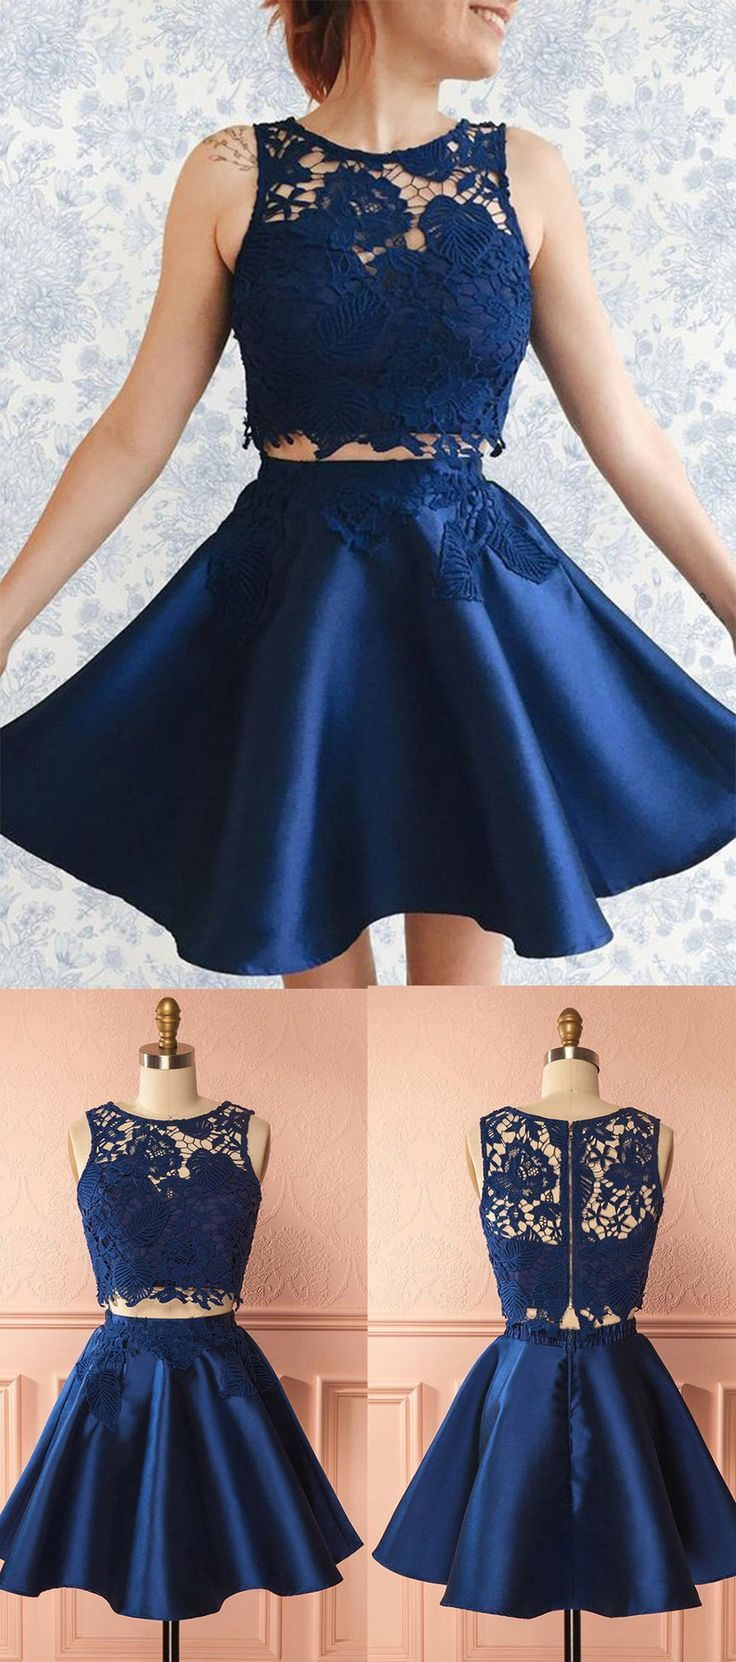 Exquisite Two Pieces Jewel Neckline Homecoming Dress Prom Dresses Short Prom Dresses For Teens Satin Homecoming Dress [ 1662 x 736 Pixel ]